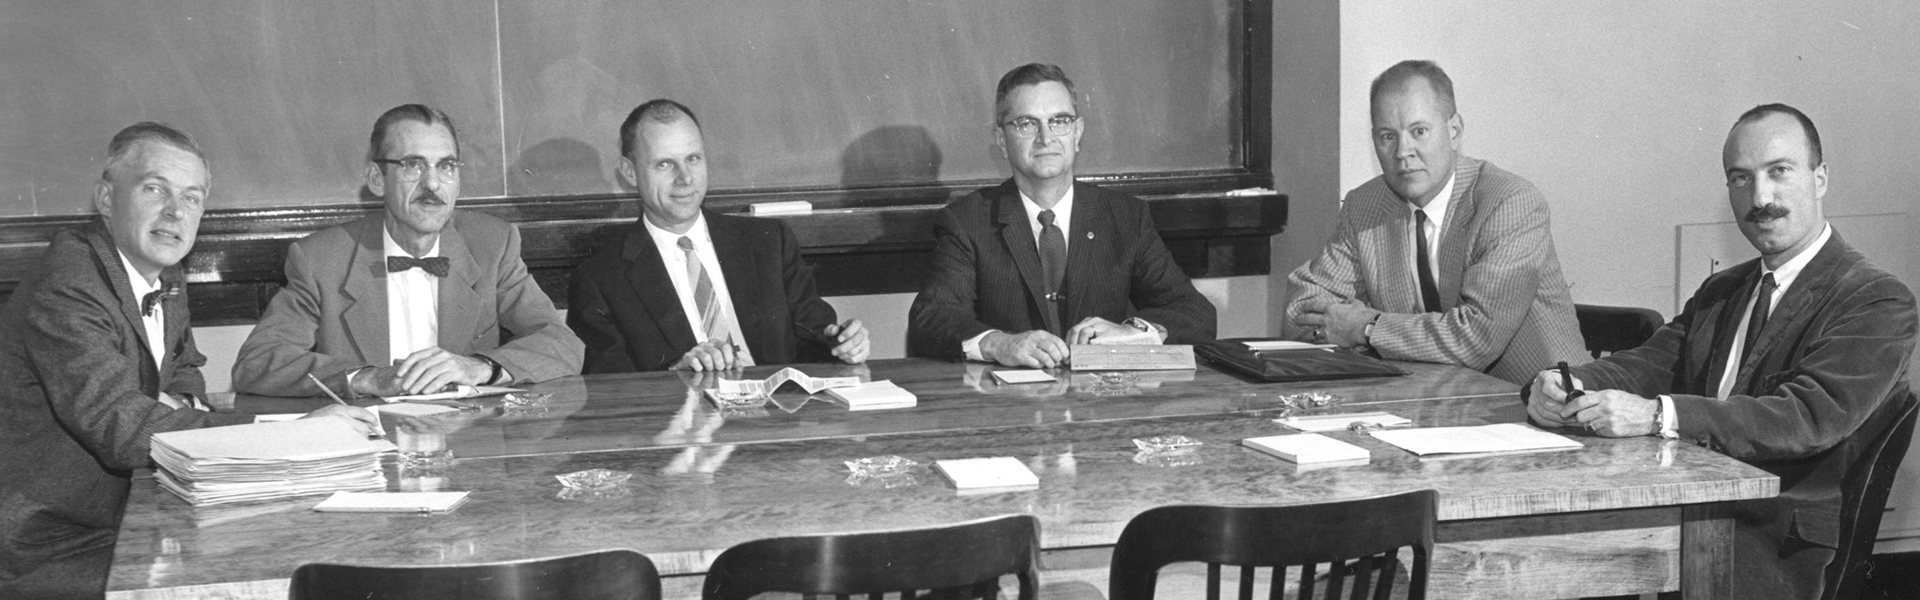 Board of Trustees, IPS, 1961